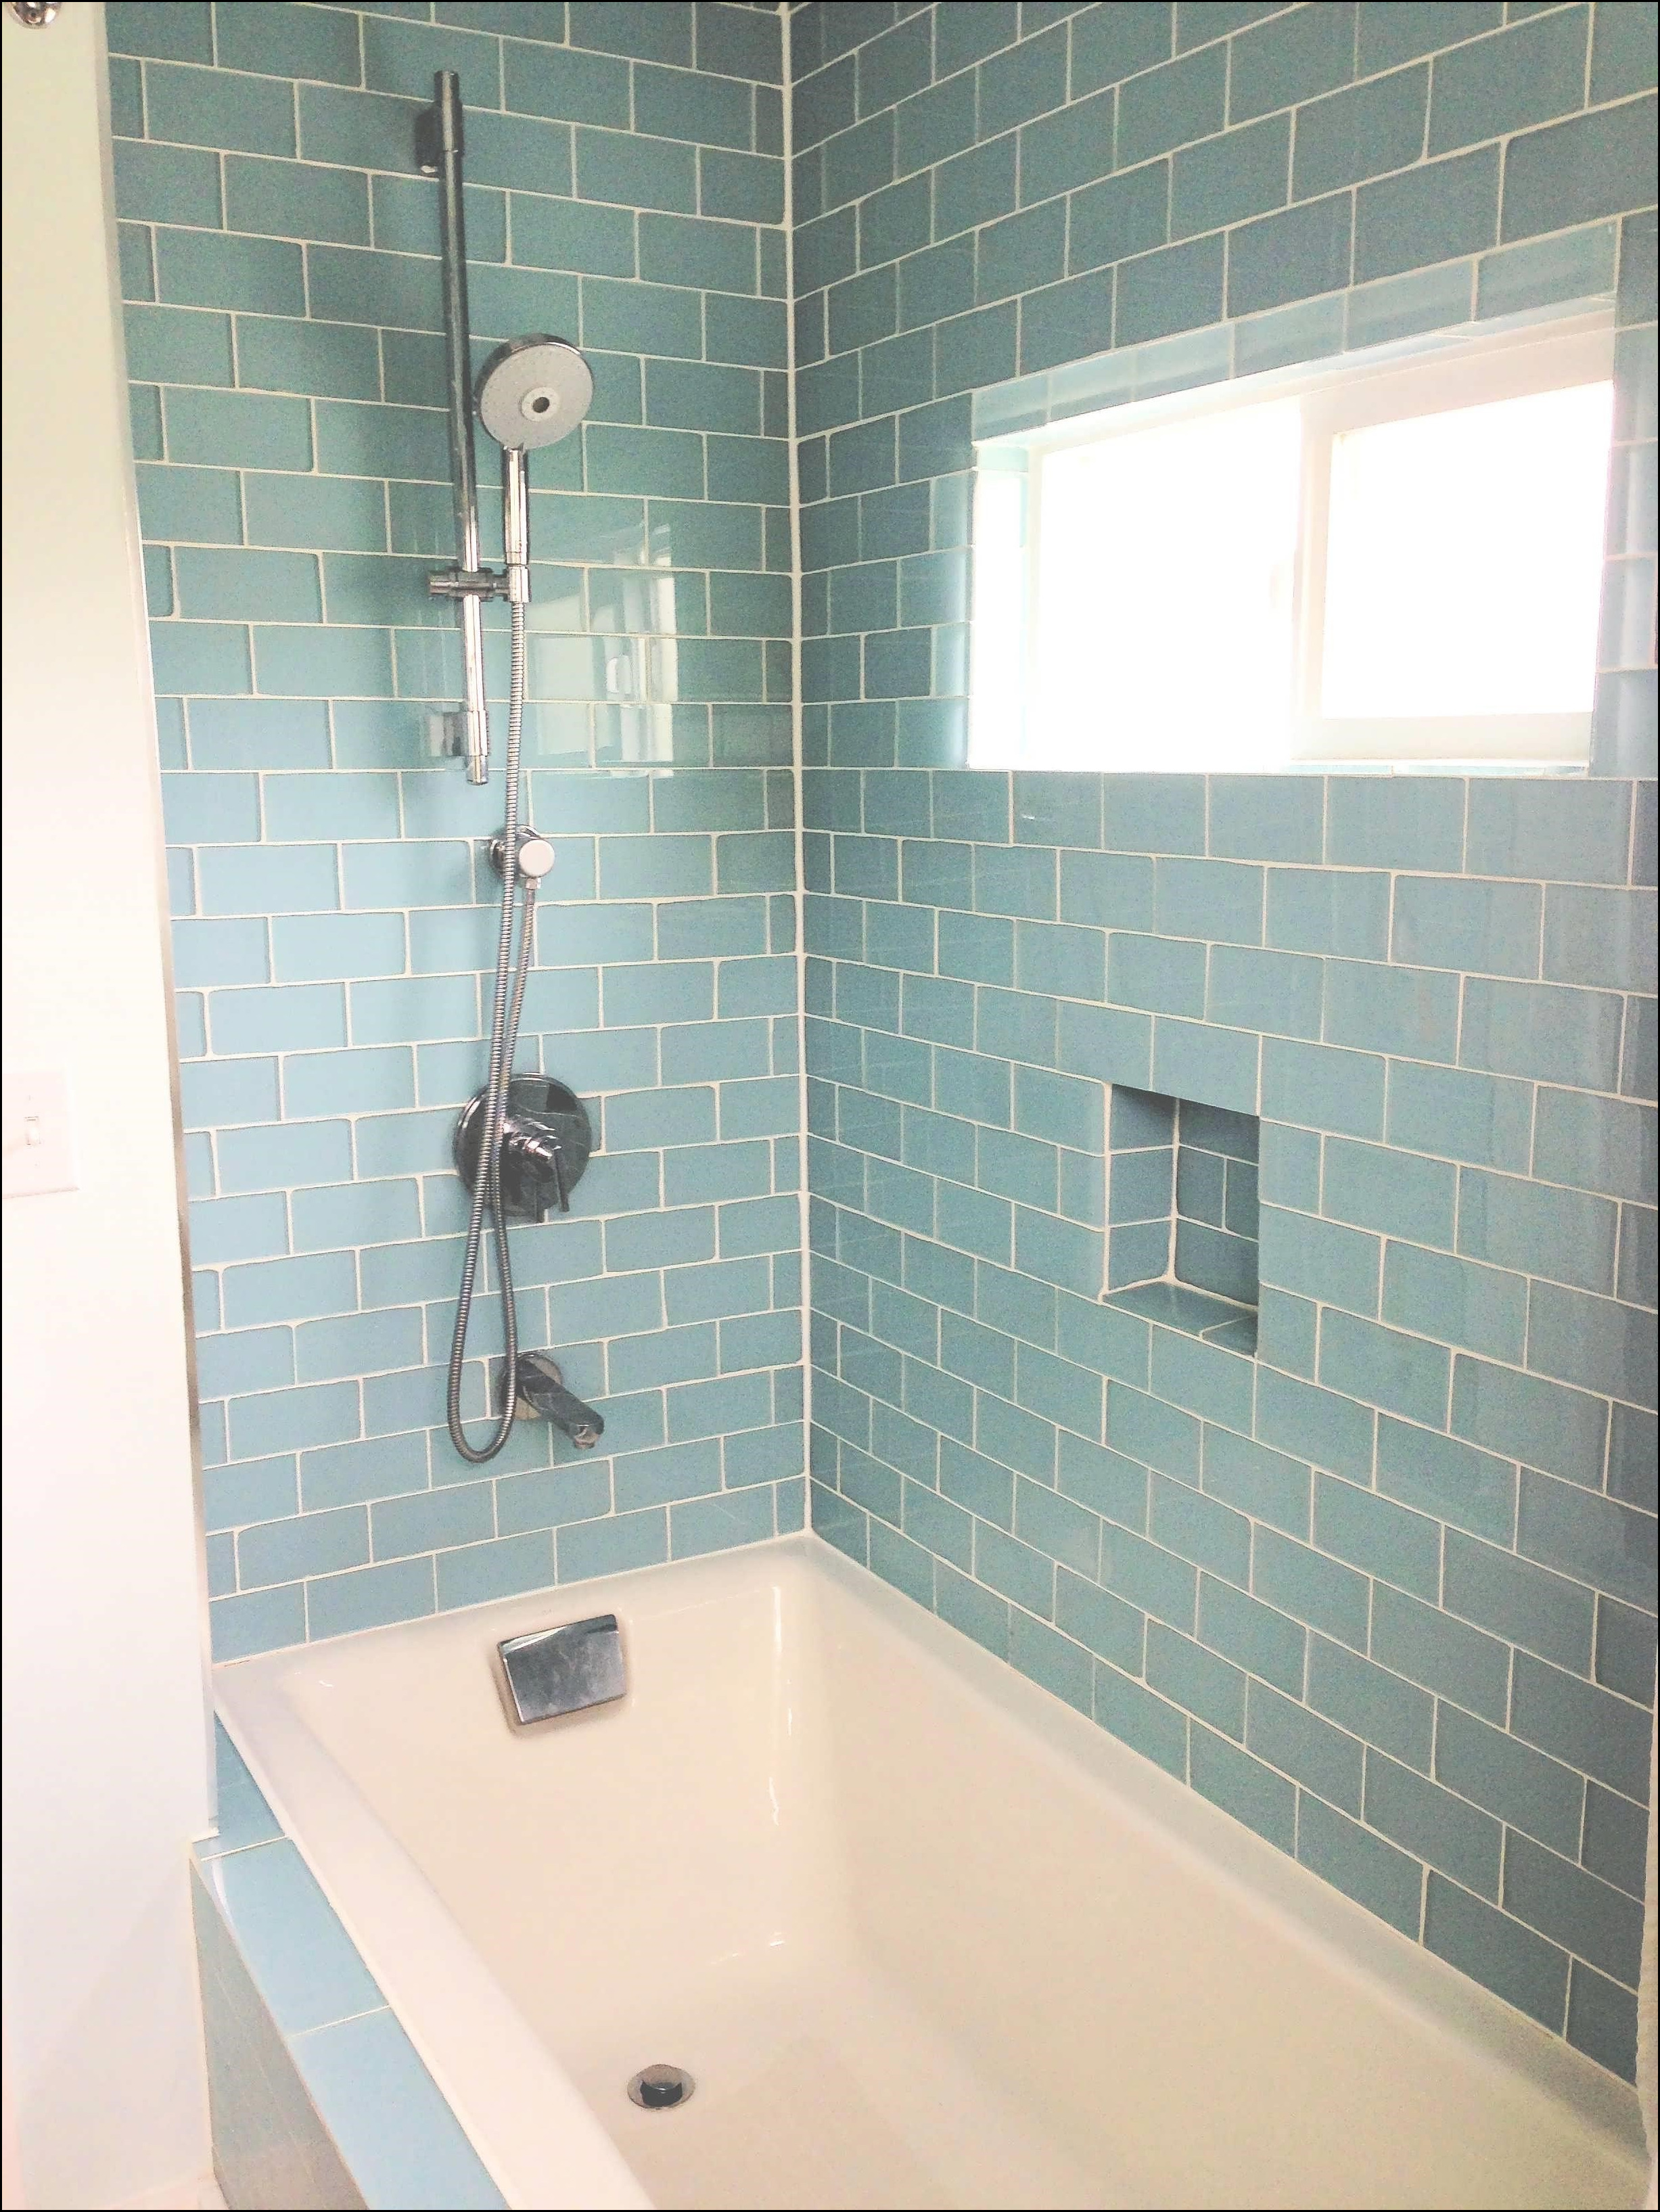 Bathroom Suggestions Bathroom Tile Concepts For Small Bathrooms |